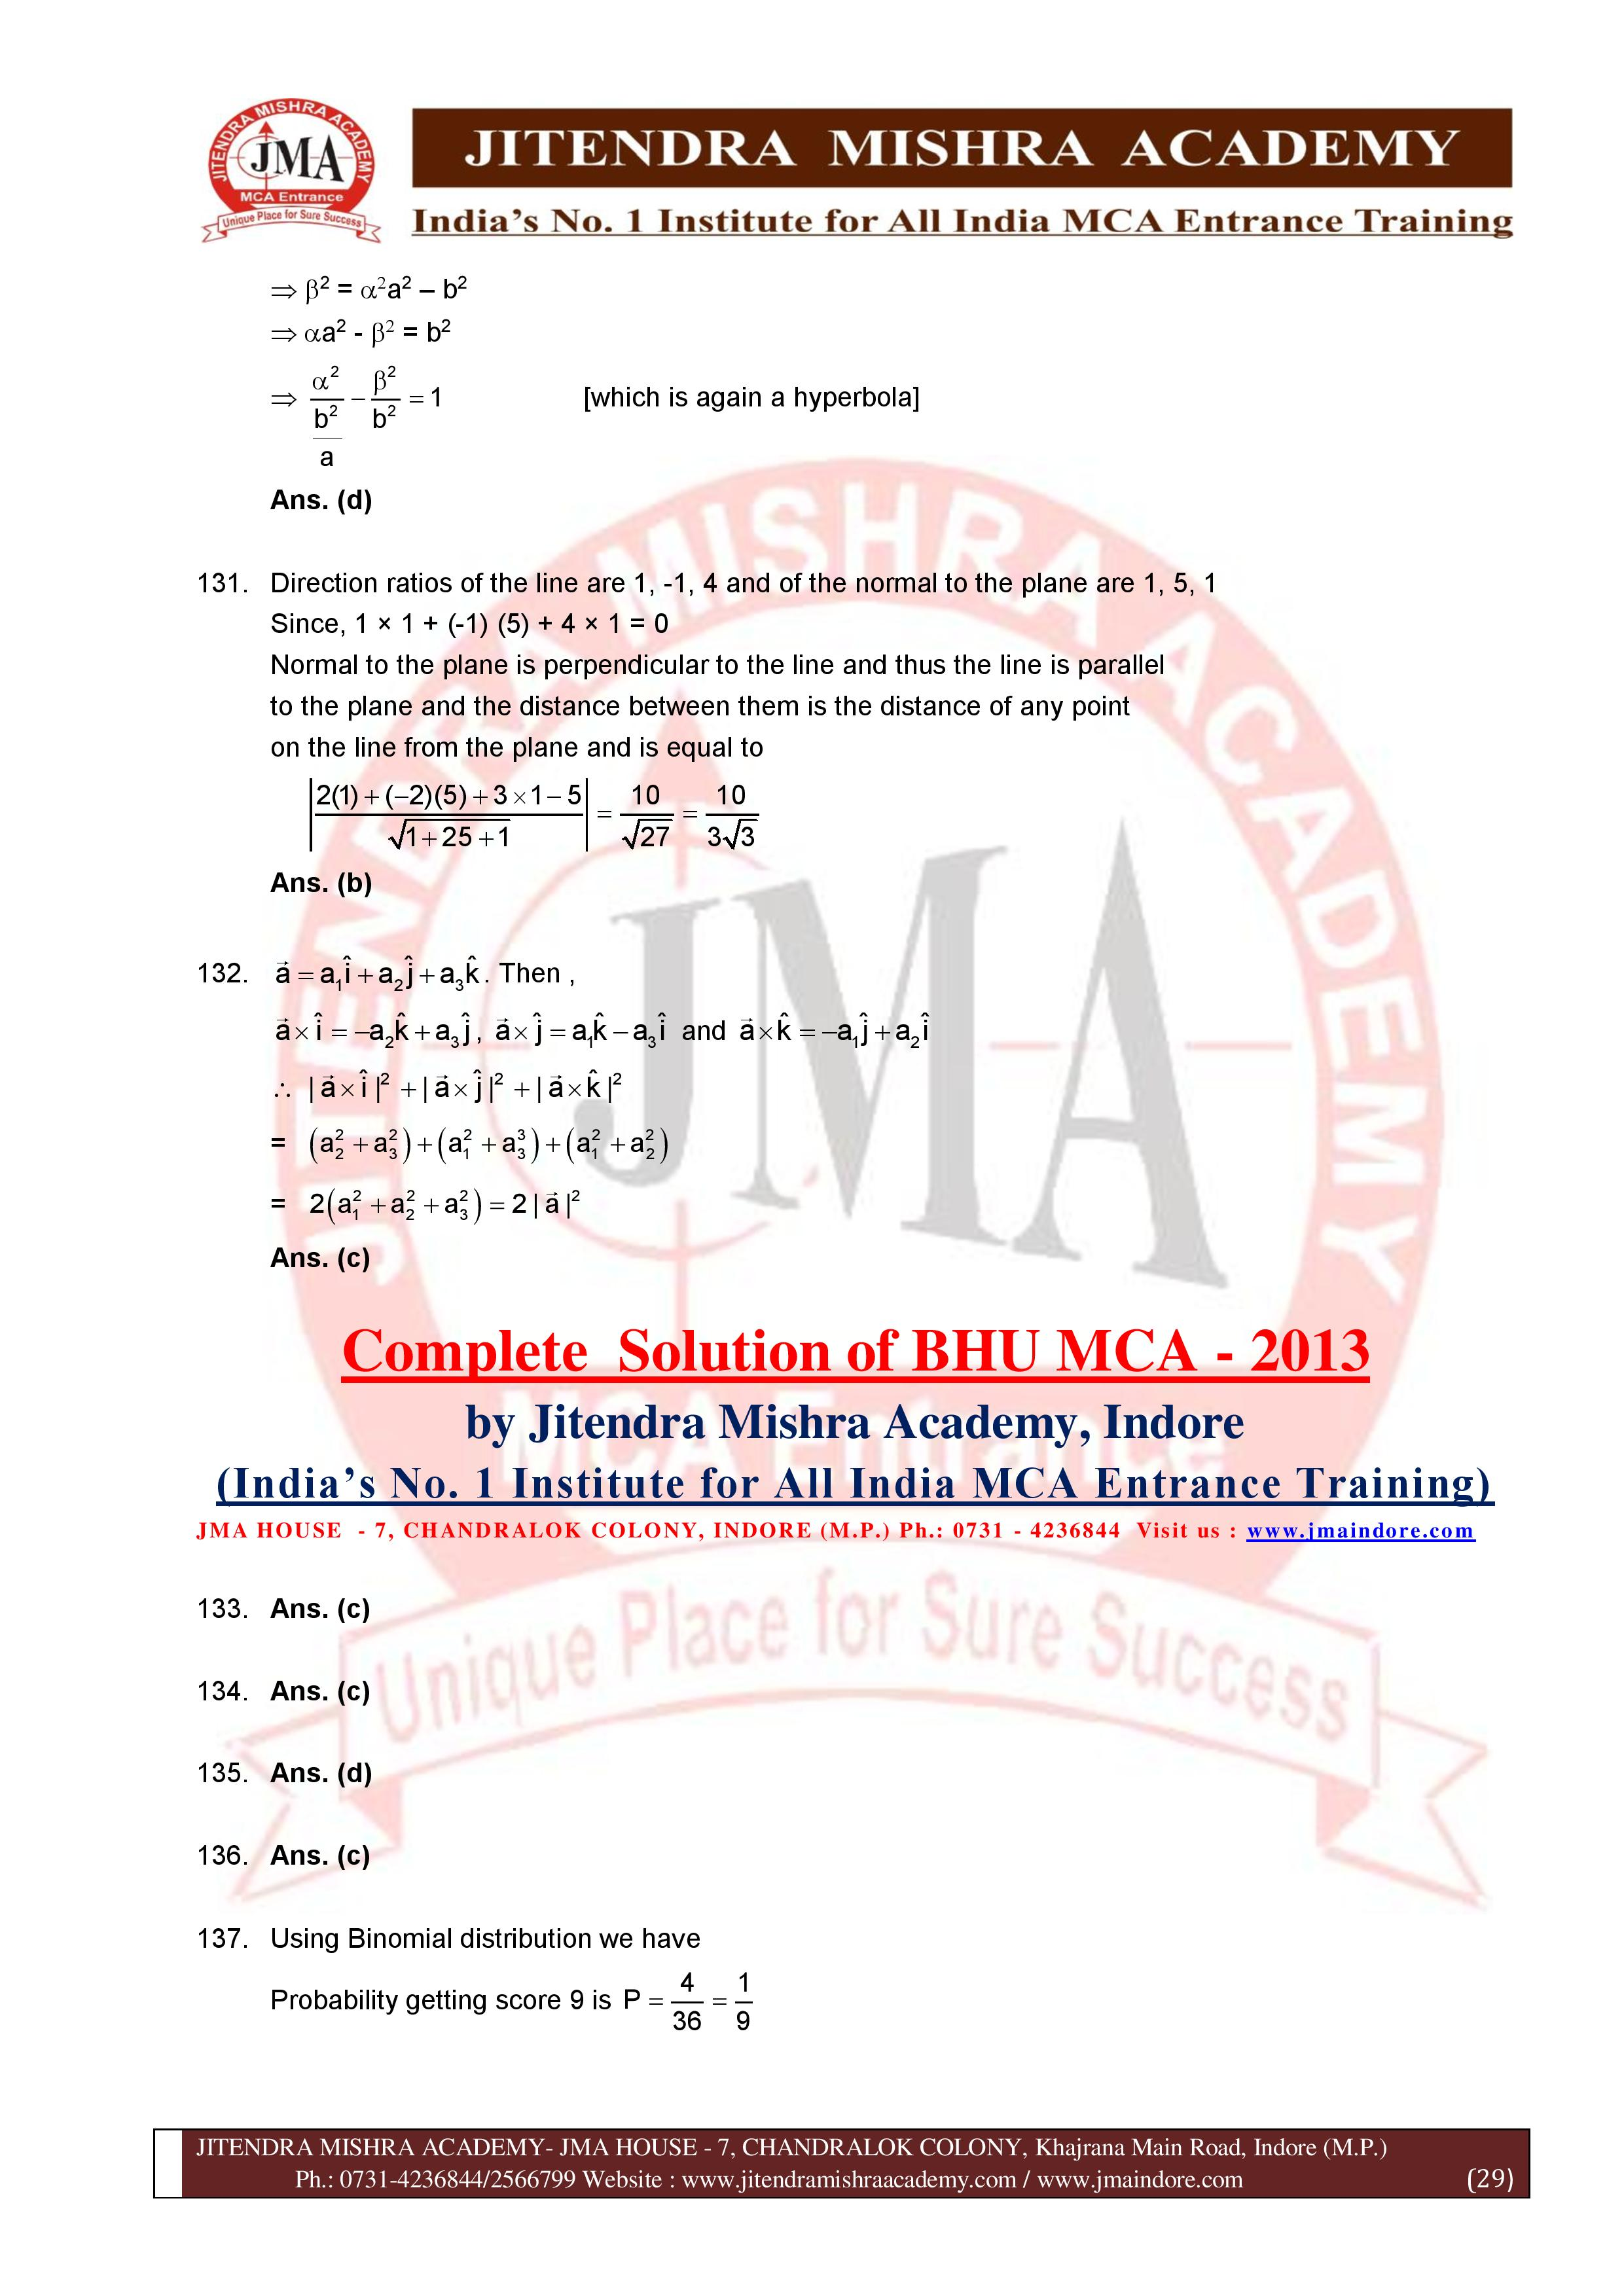 BHU 2013 SOLUTION (SET - 3) (06.07.16)-page-029